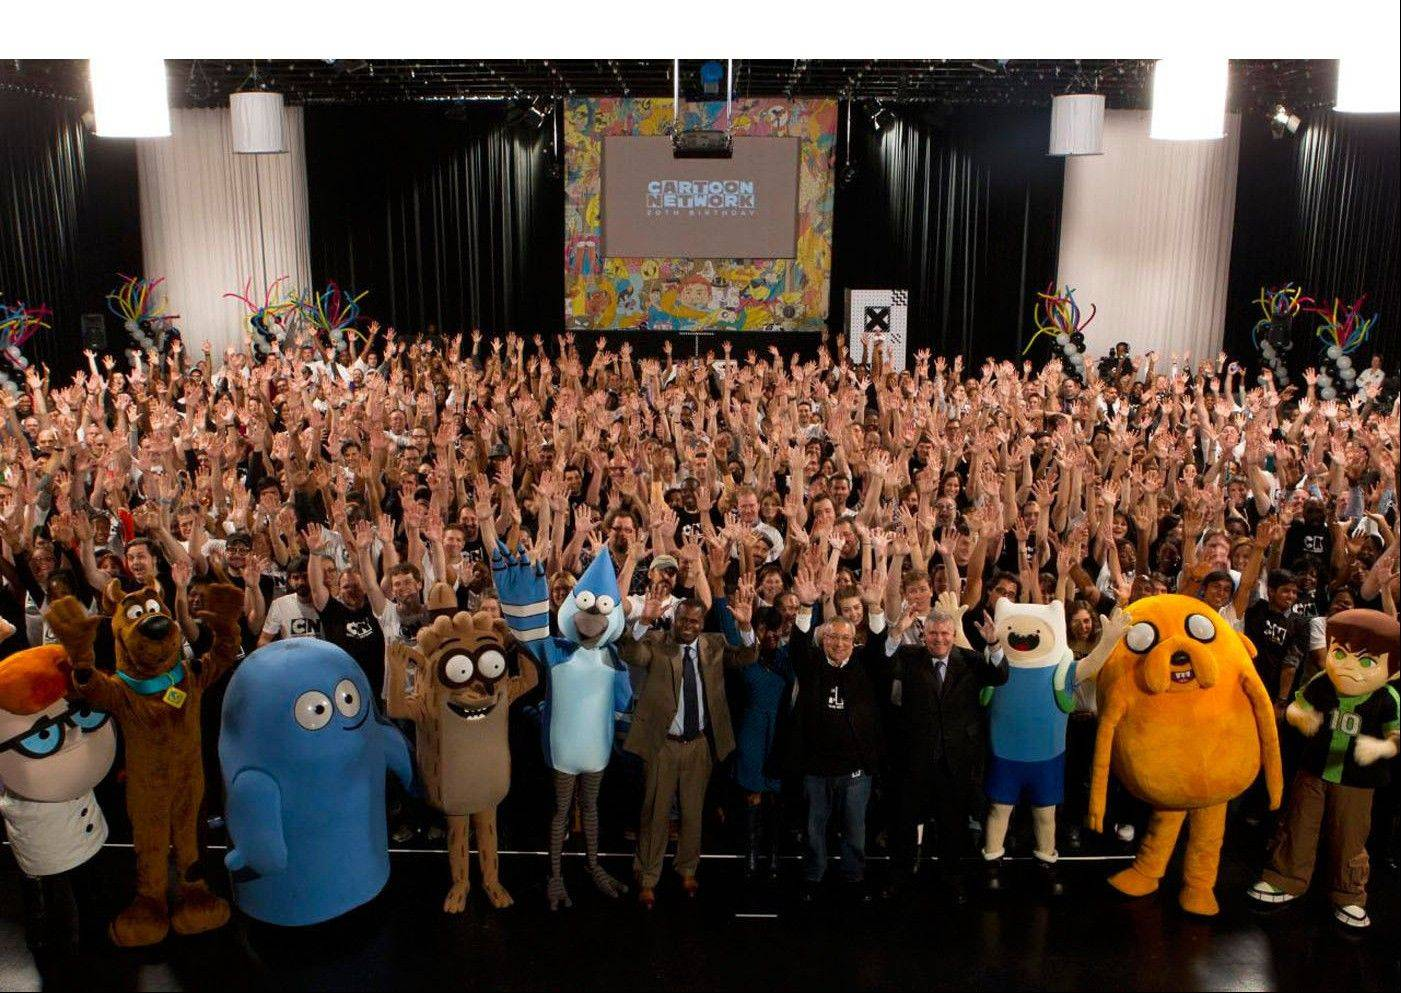 Beloved cartoon characters over the last 20 years celebrate Cartoon Network's 20th Birthday.